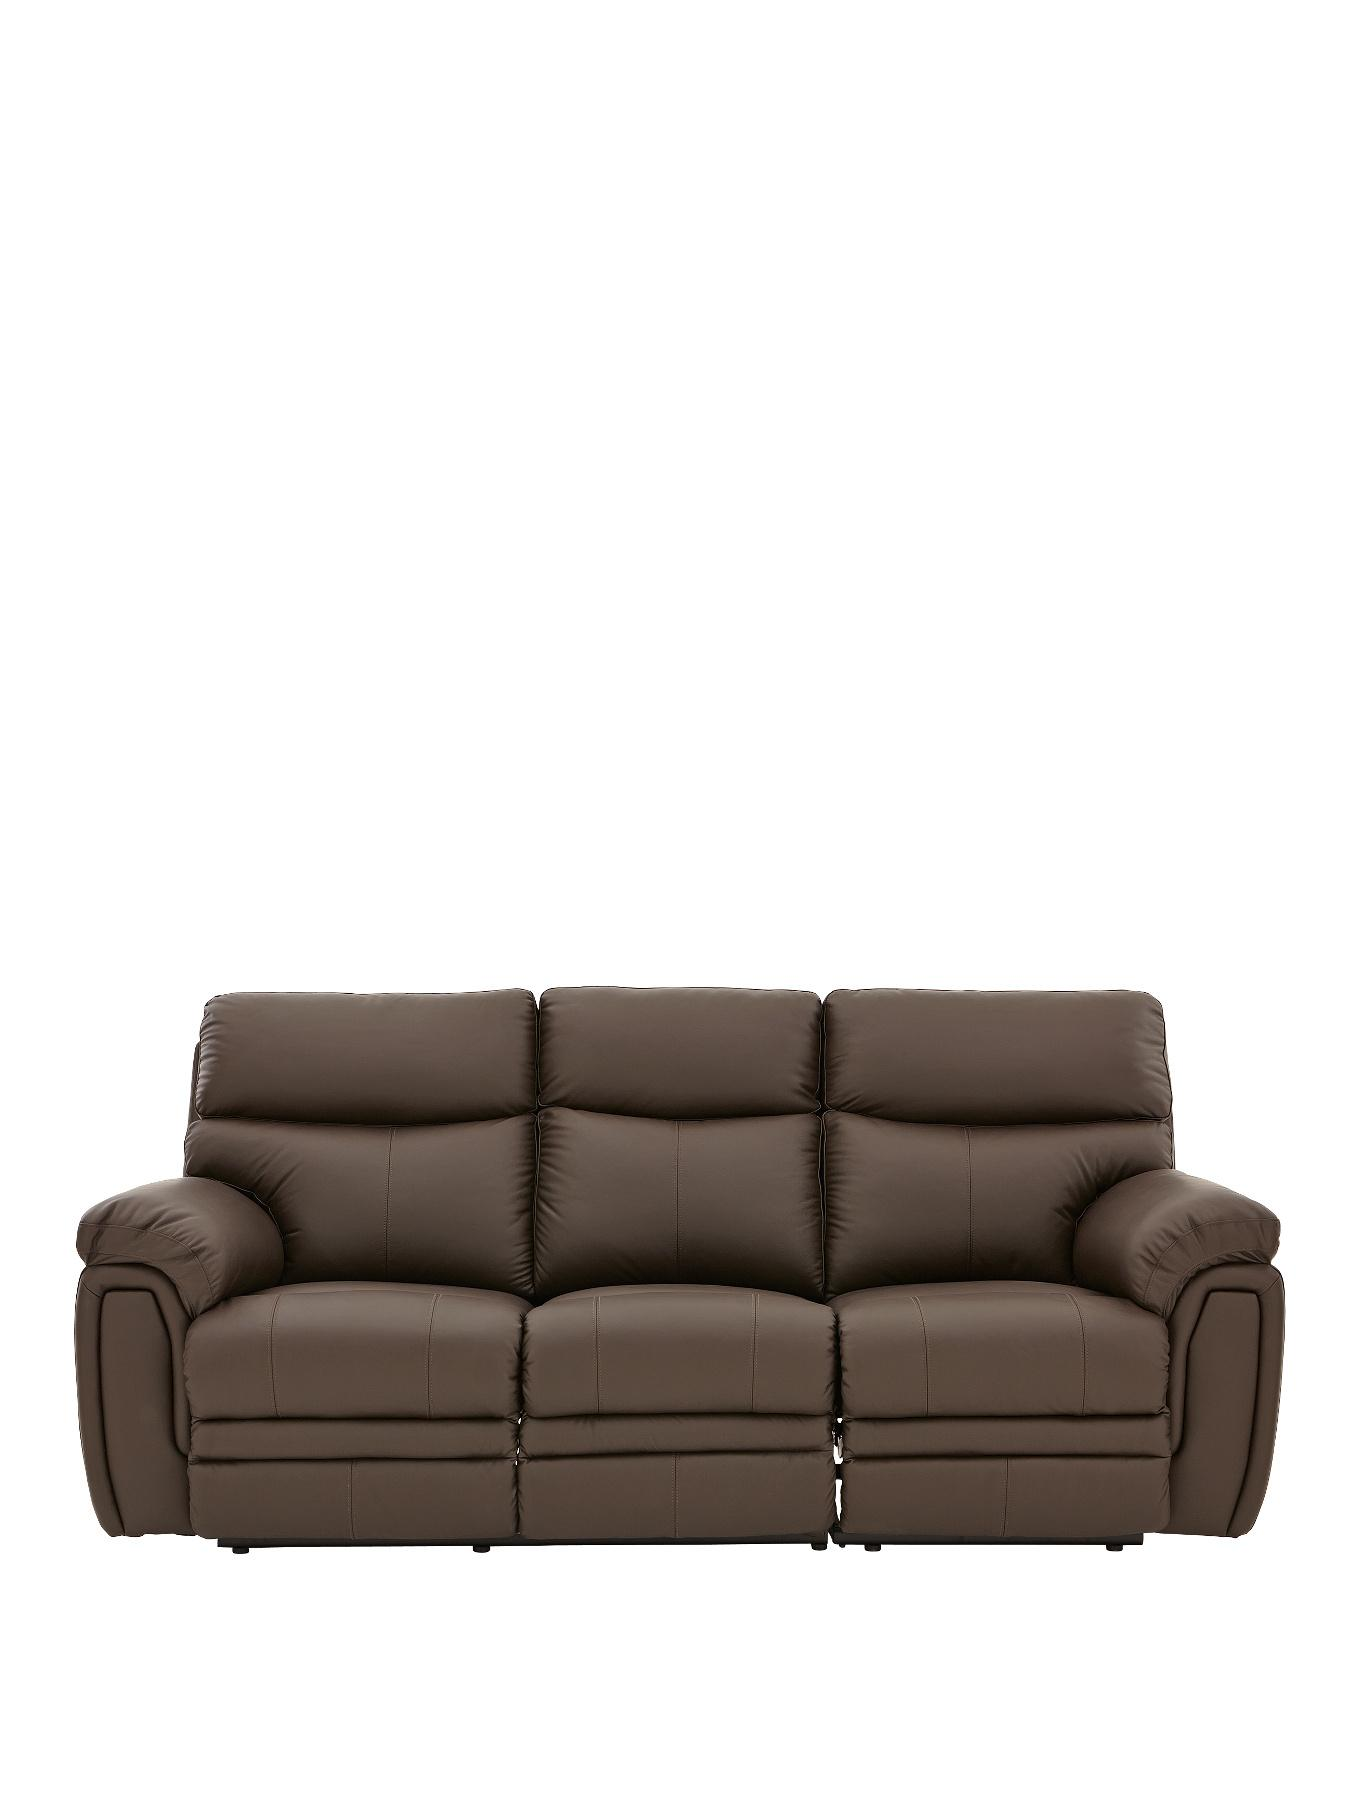 cheap sectional sofas in tampa fl dark maroon leather sofa recliner shop for and save online